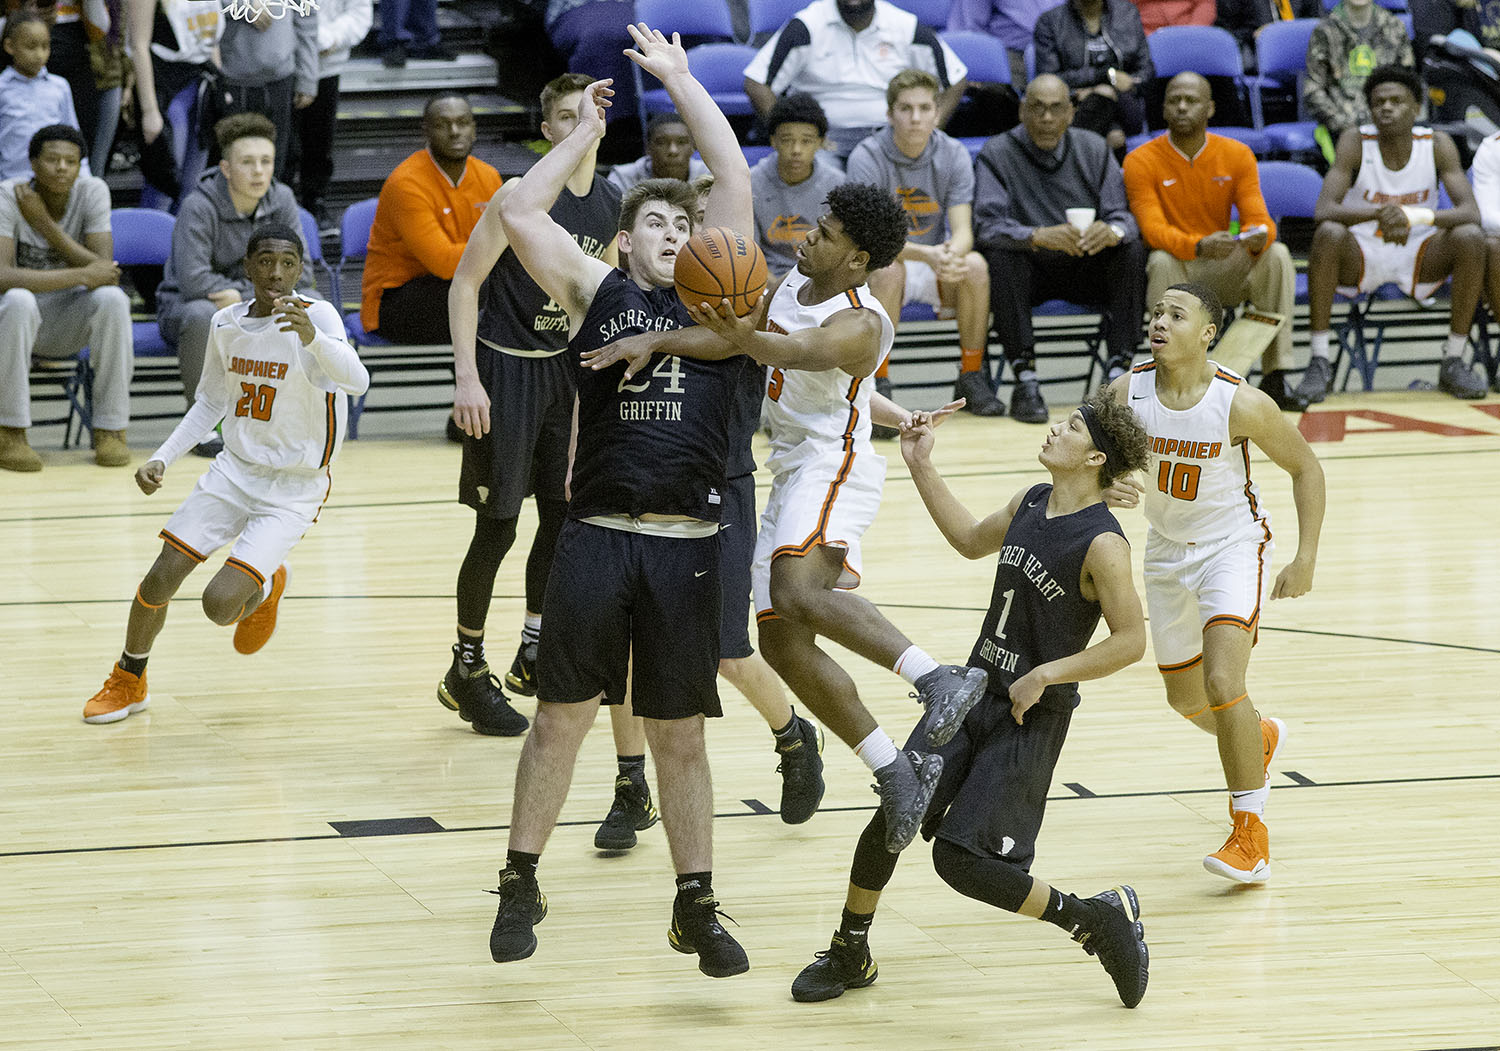 Lanphier's Stanley Morgan  drives past Sacred Heart-Griffin's Nick Broeker during the Boys City Tournament at the Bank of Springfield Center Thursday, Jan. 17, 2019.  [Ted Schurter/The State Journal-Register]